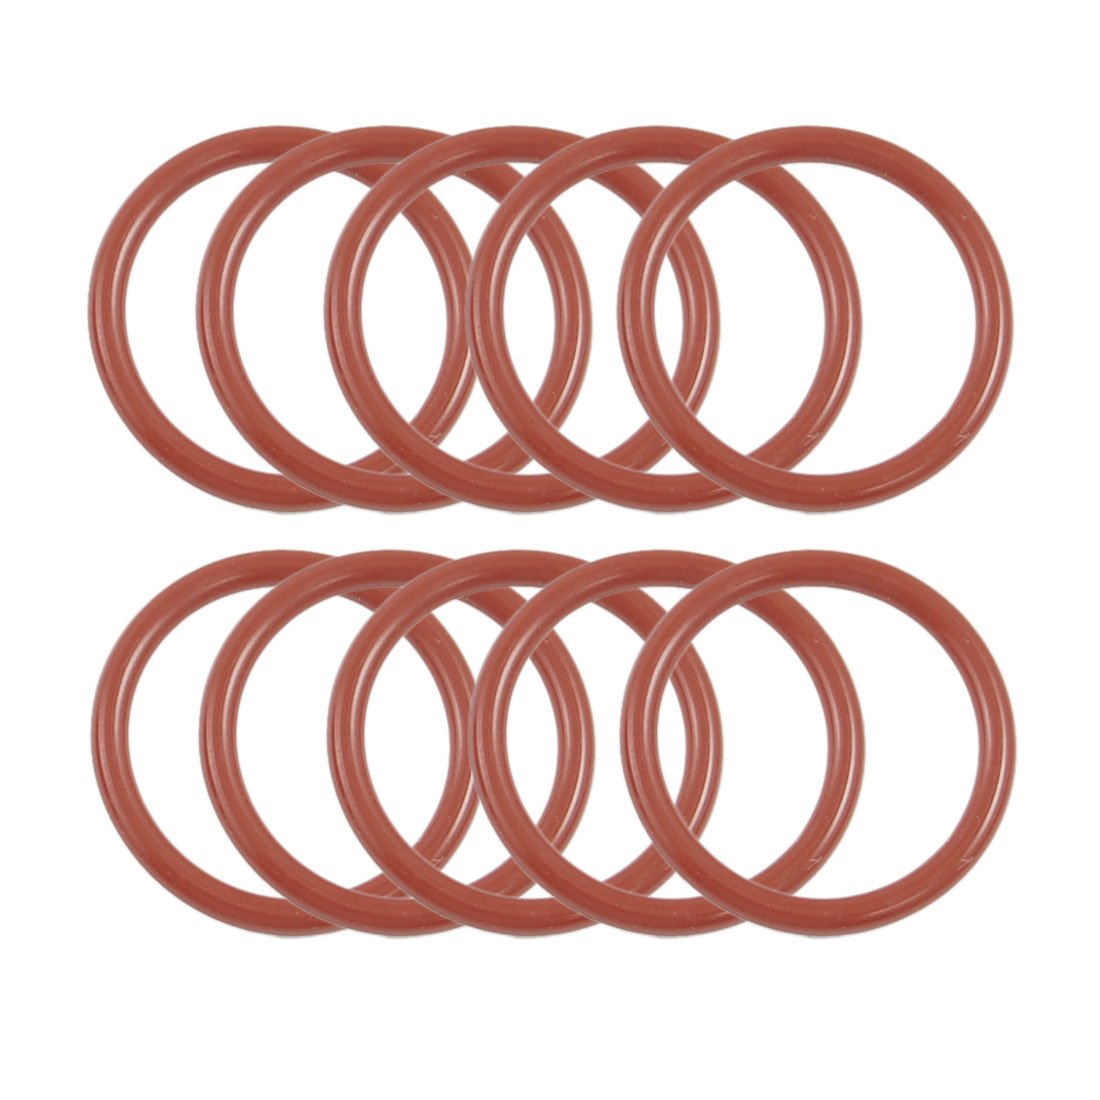 Sourcingmap 10 Pcs 25mm OD 20mm Inside Dia 2.5mm Thickness Silicone O Rings Oil Seals Gasket Dark Red a12041800ux0253